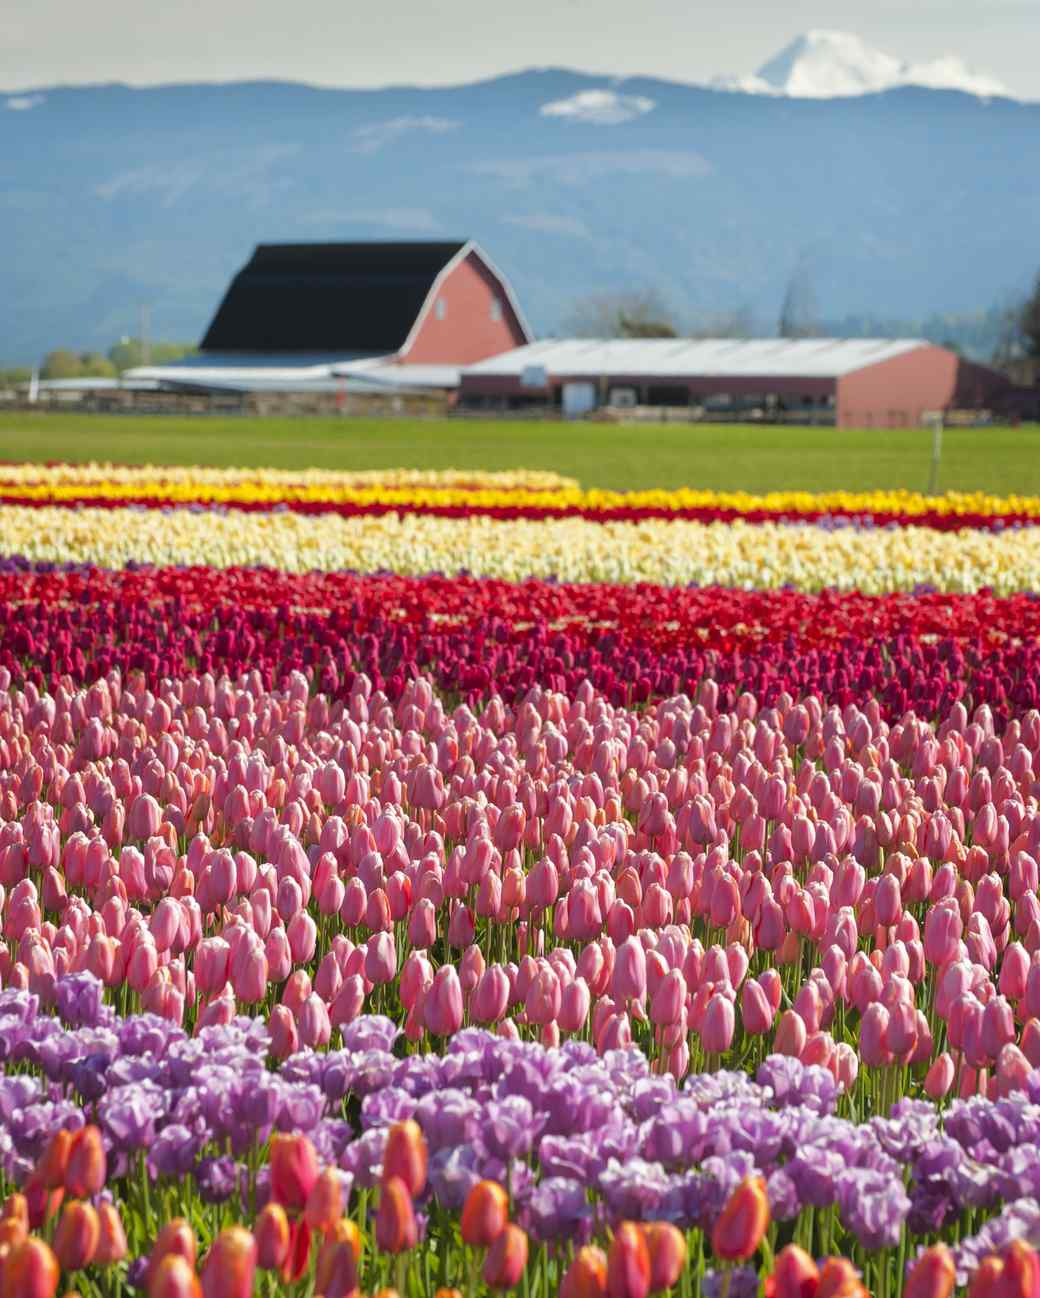 The Most Beautiful Flower Fields to Visit in the U.S.